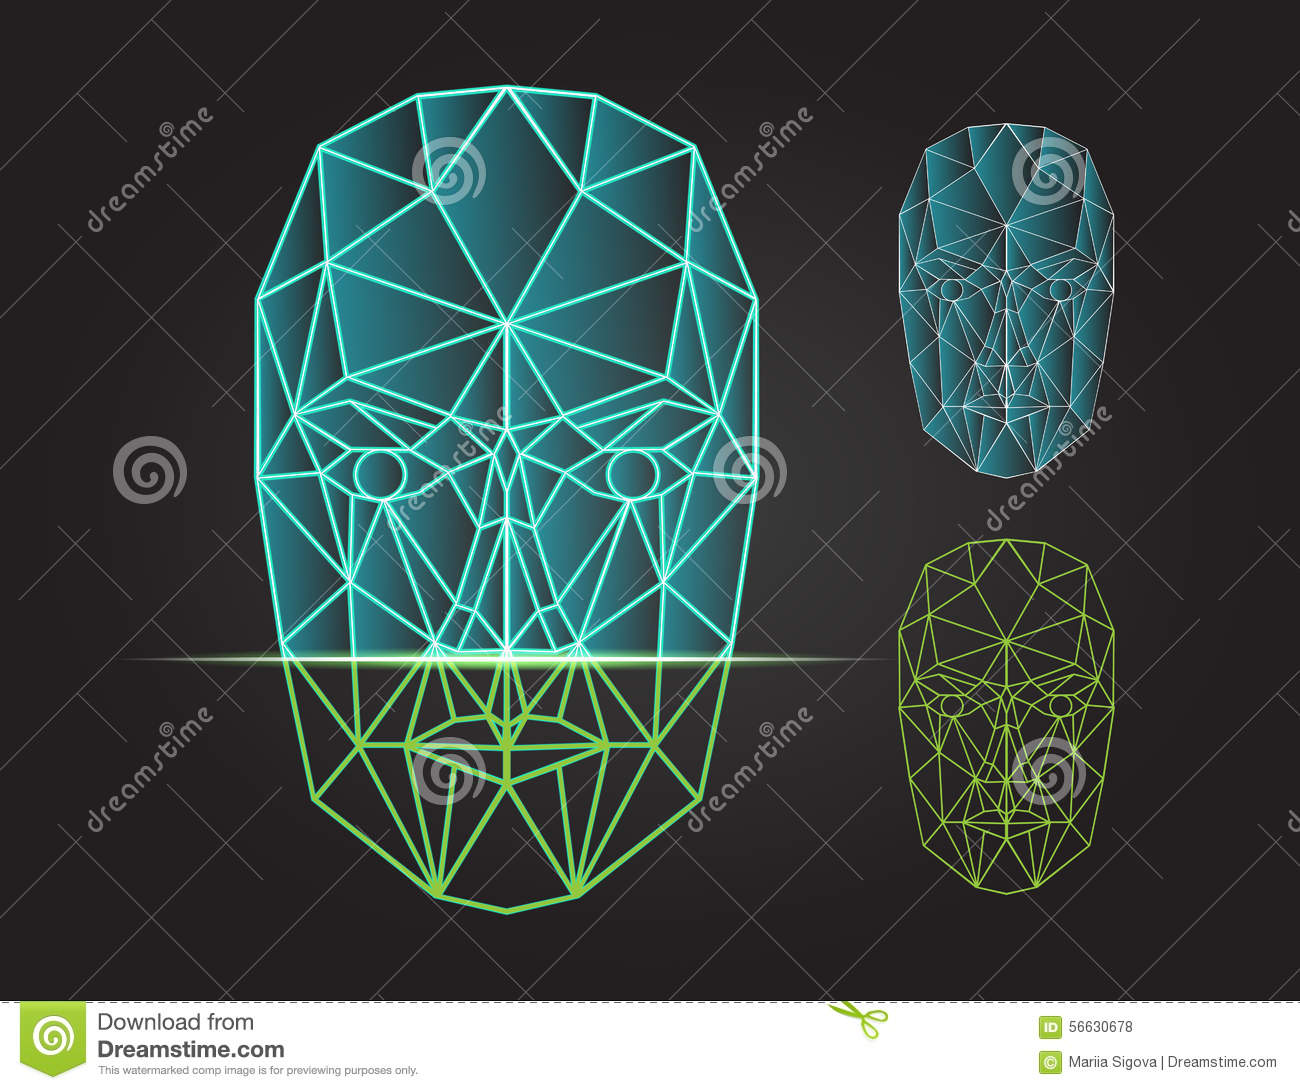 Face recognition and scanning - biometric security